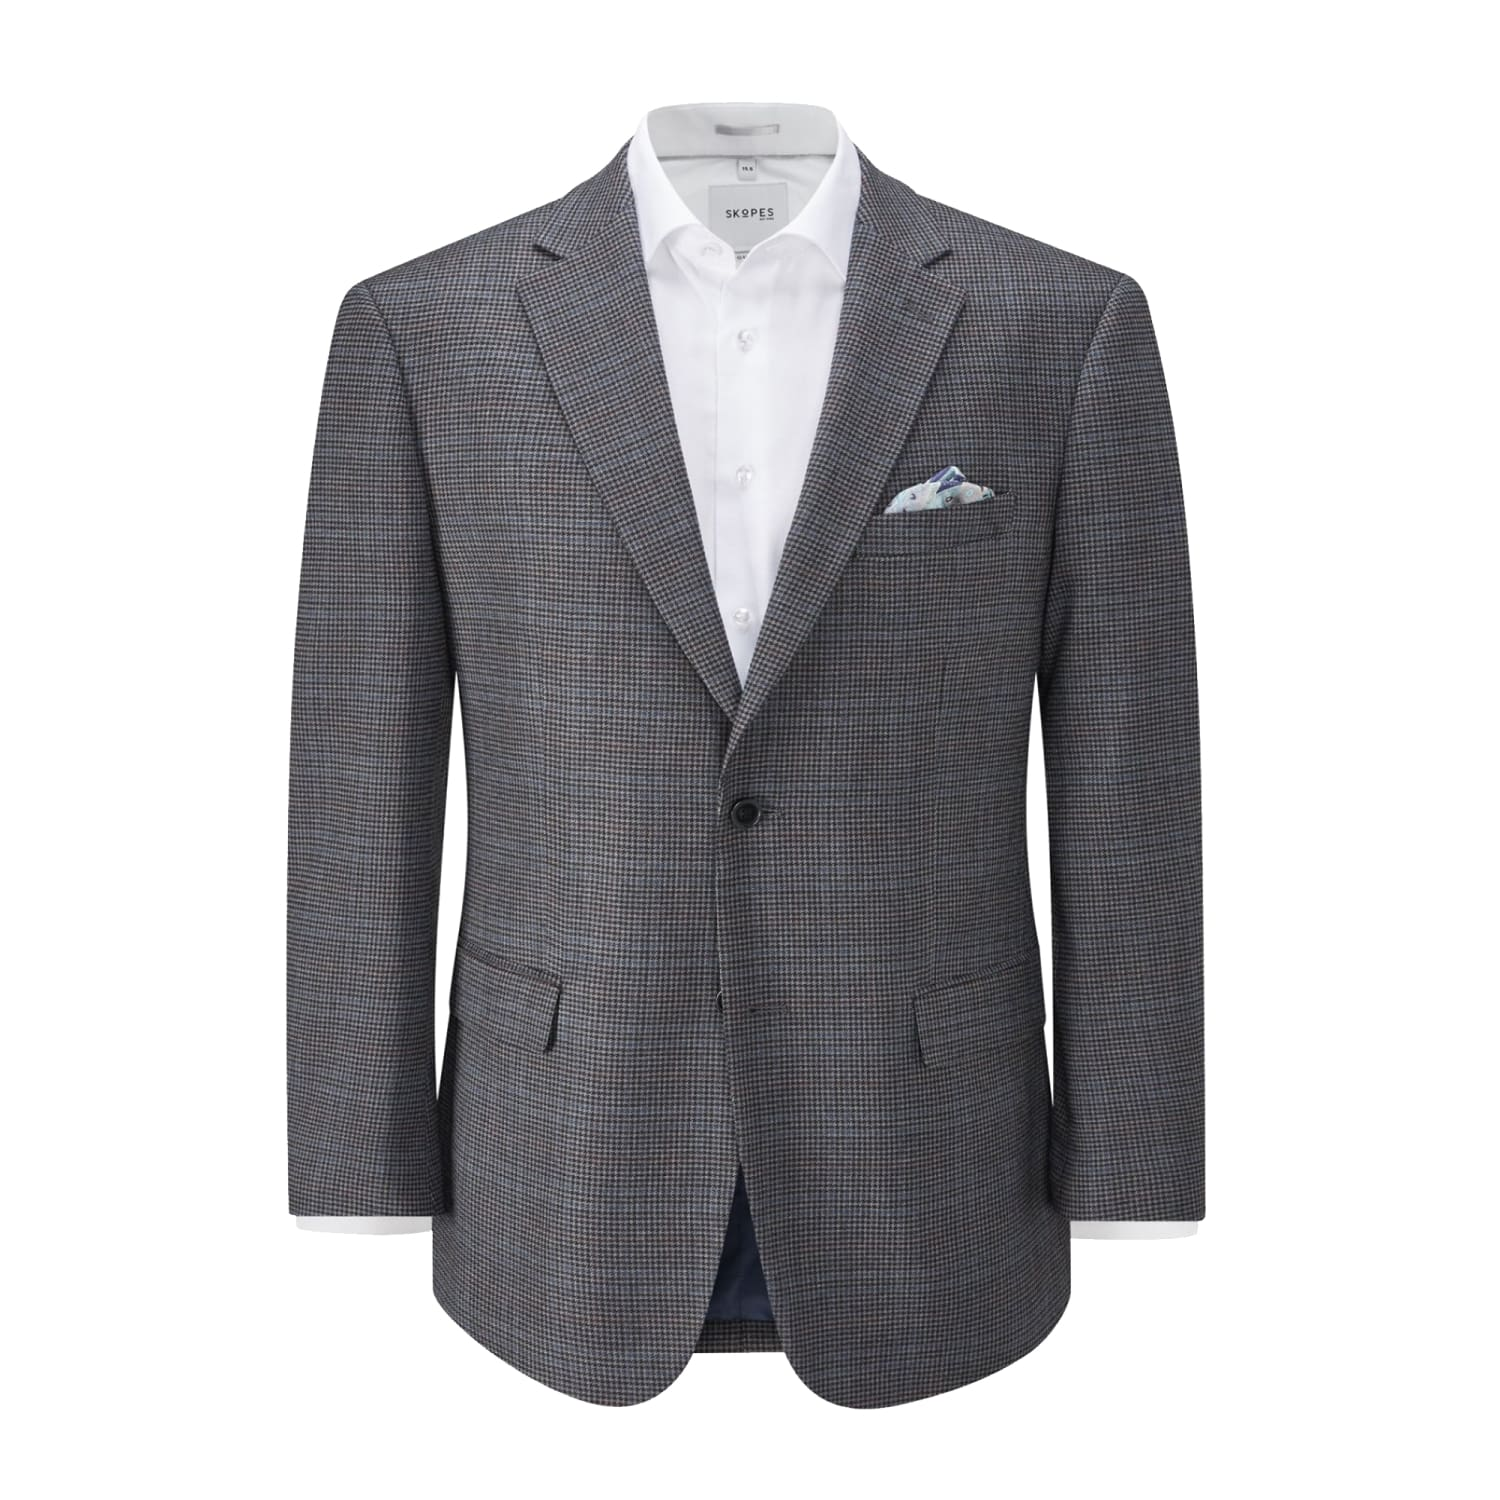 Skopes Sports Jacket - MM4014 - Ronne - Charcoal 1